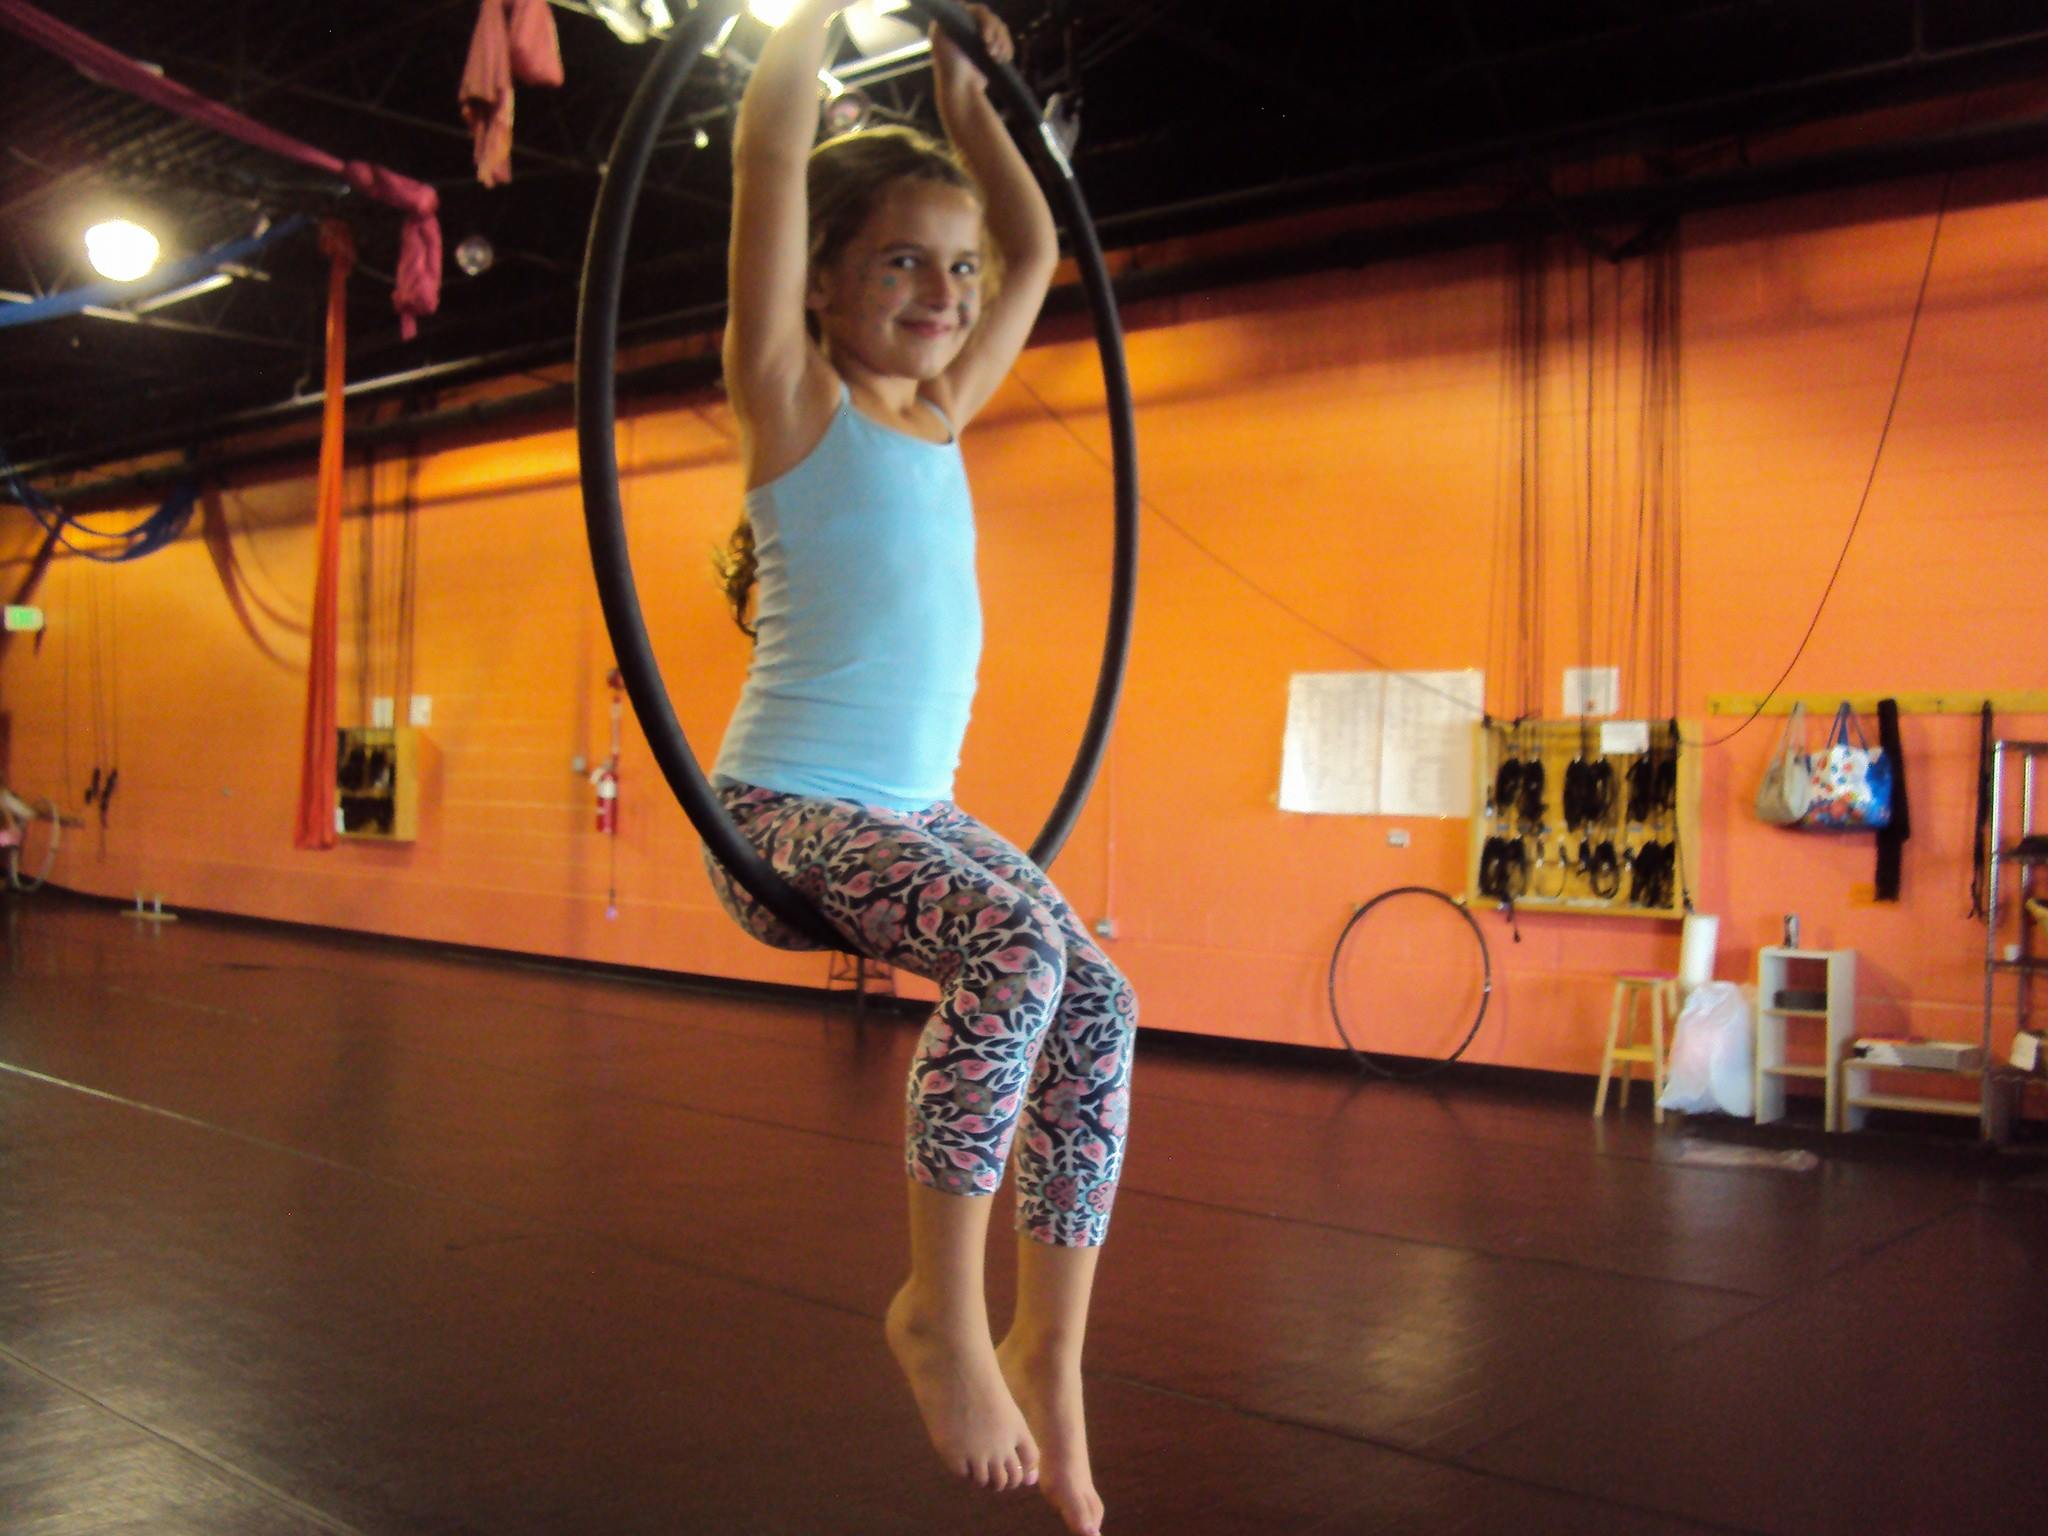 Aerial dance youth student using the hoop